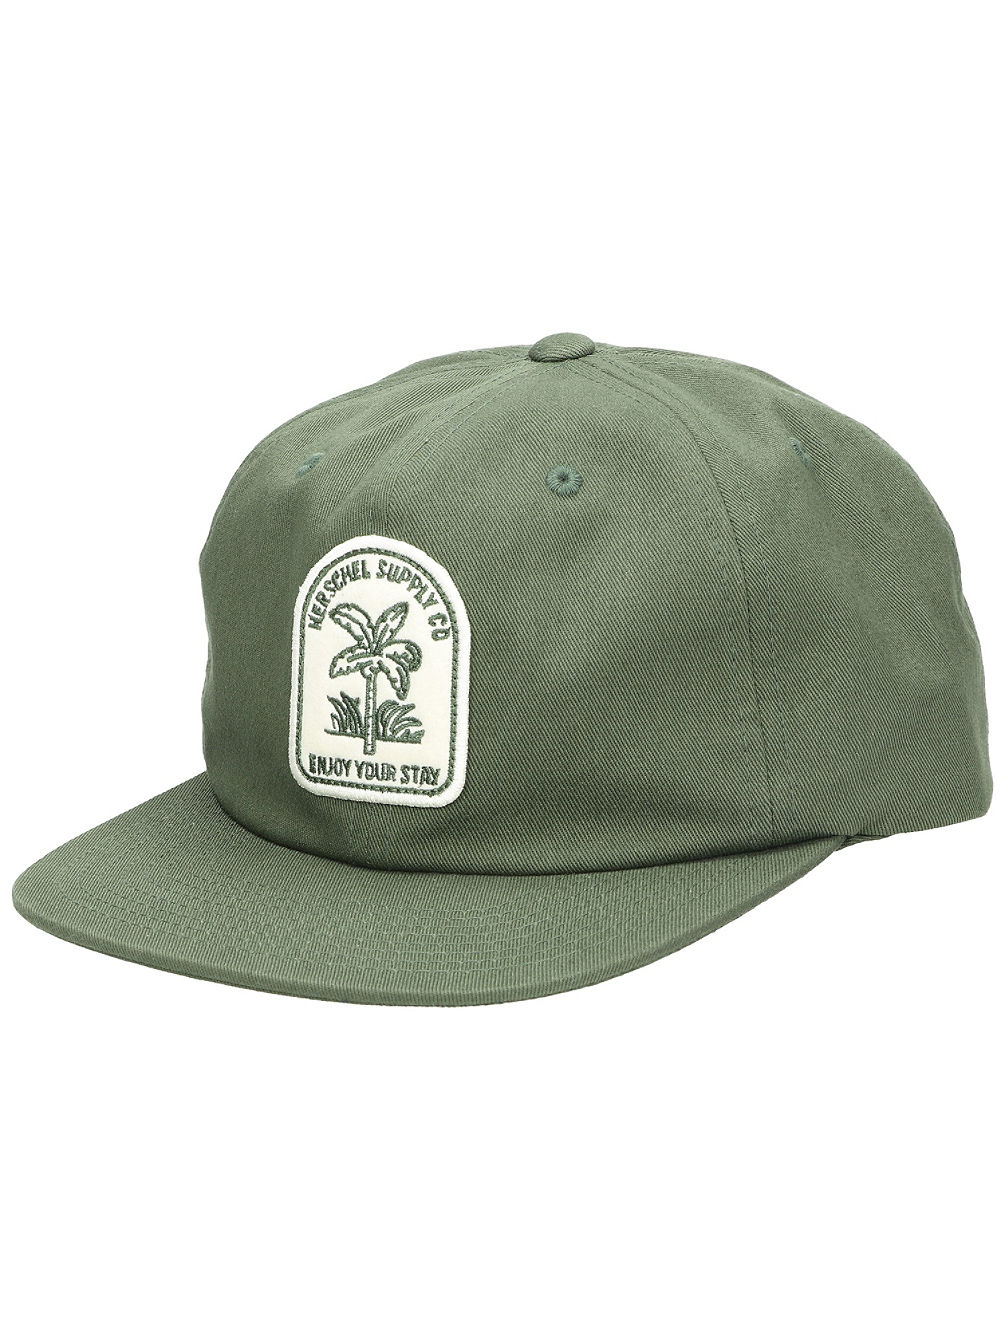 Albert Palm Cap